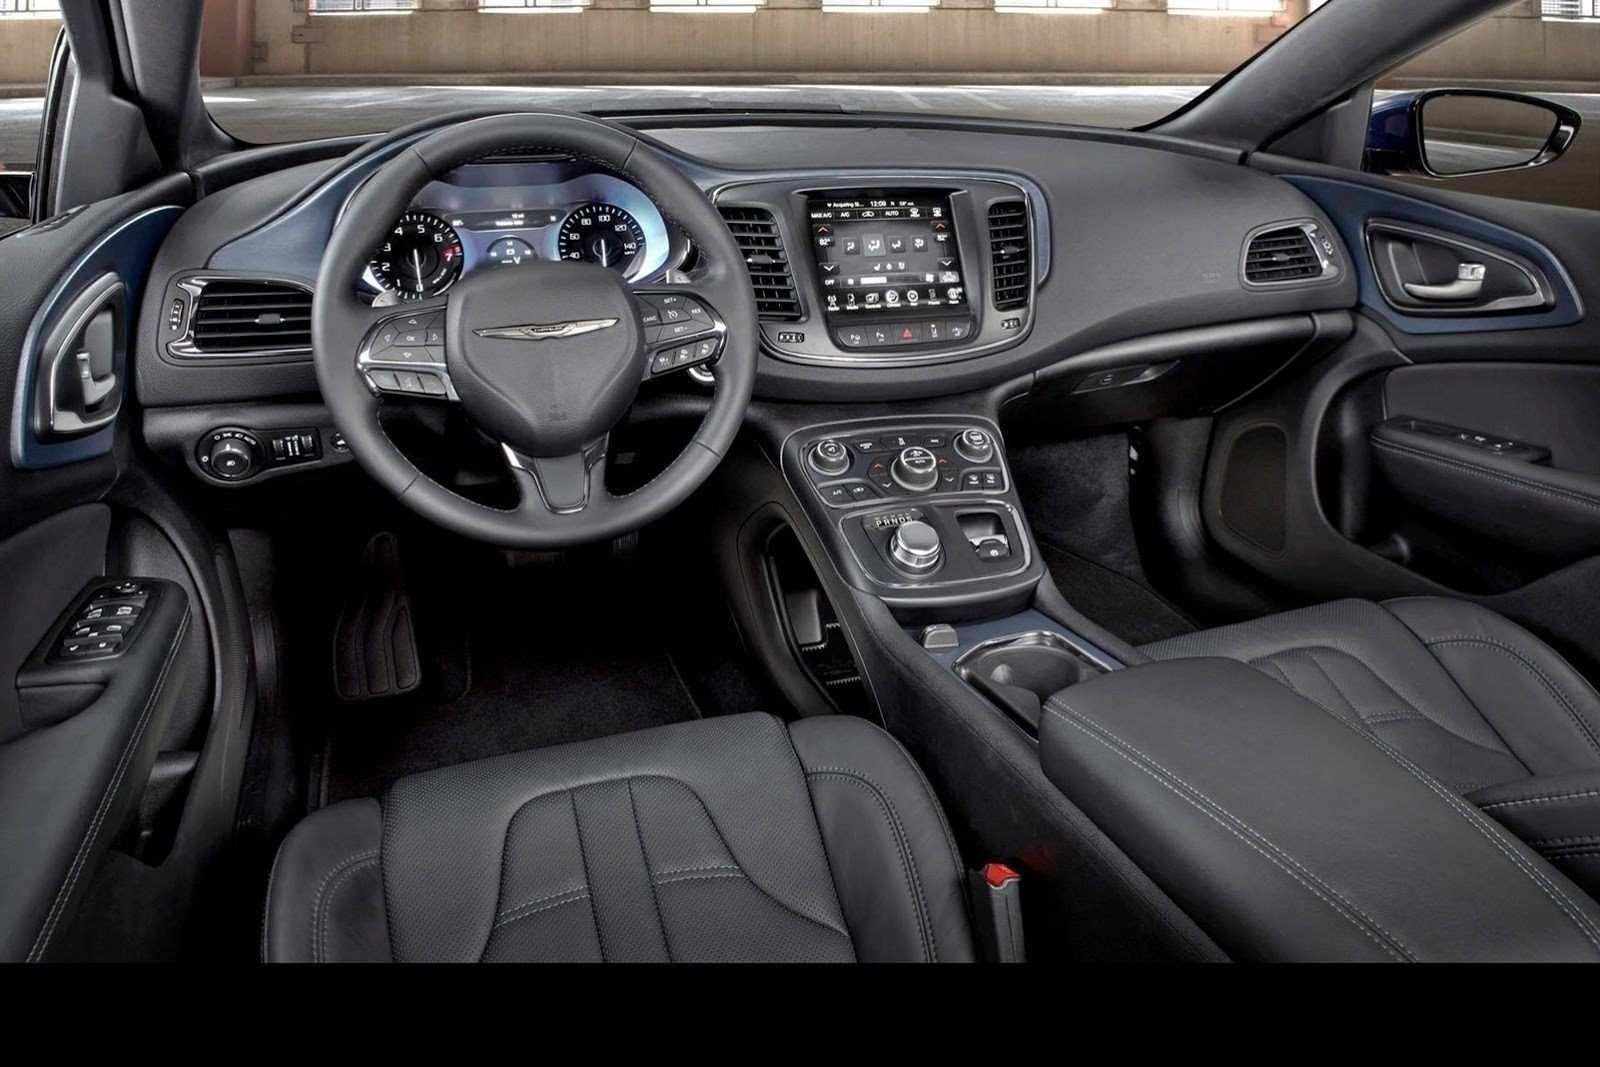 62 The 2019 Chrysler 200 Images